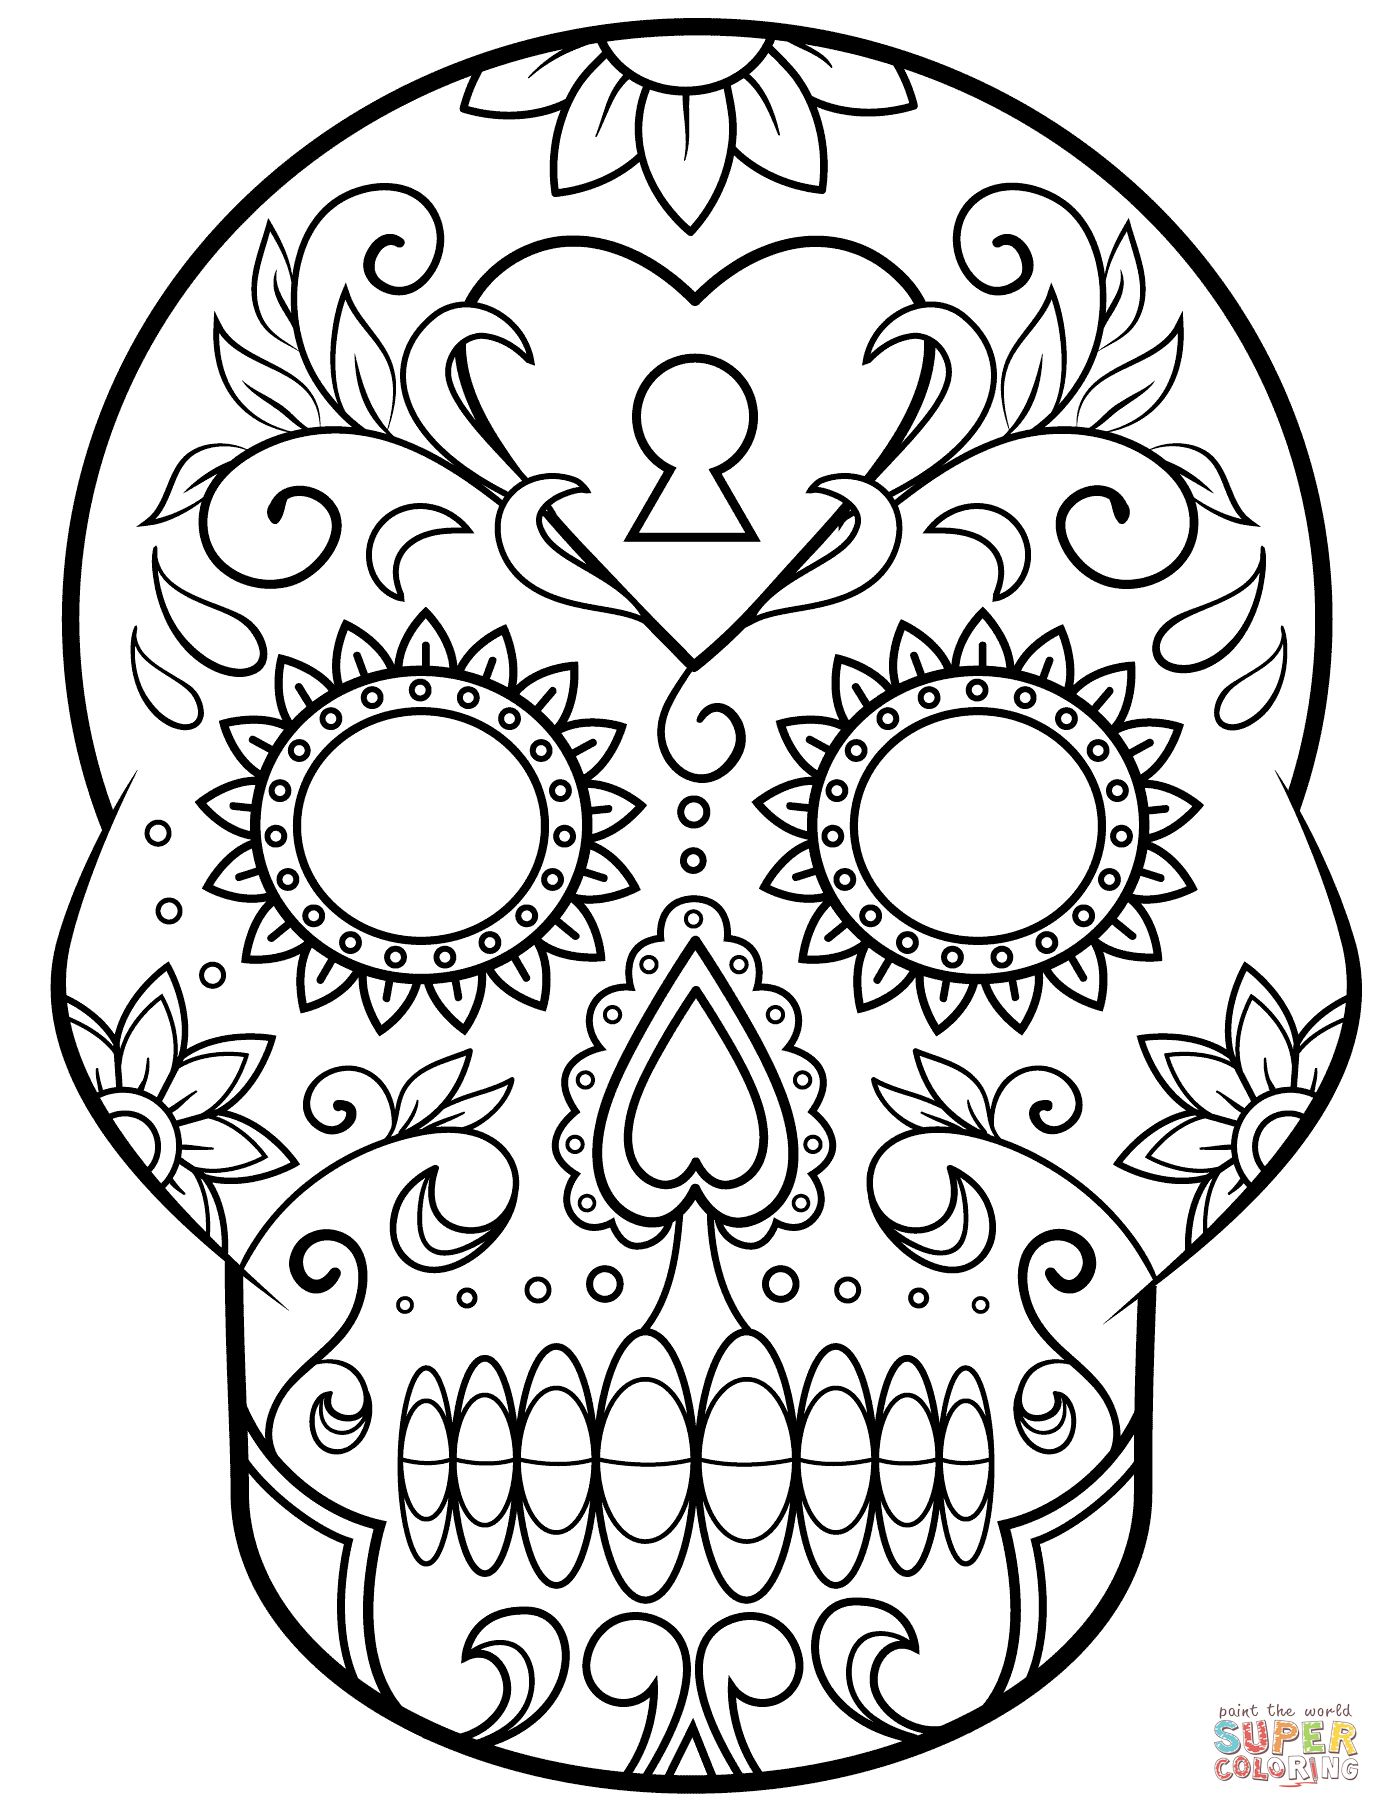 30 Inspiration Picture Of Skeleton Coloring Pages Albanysinsanity Com Skull Coloring Pages Skull Template Printable Coloring Pages